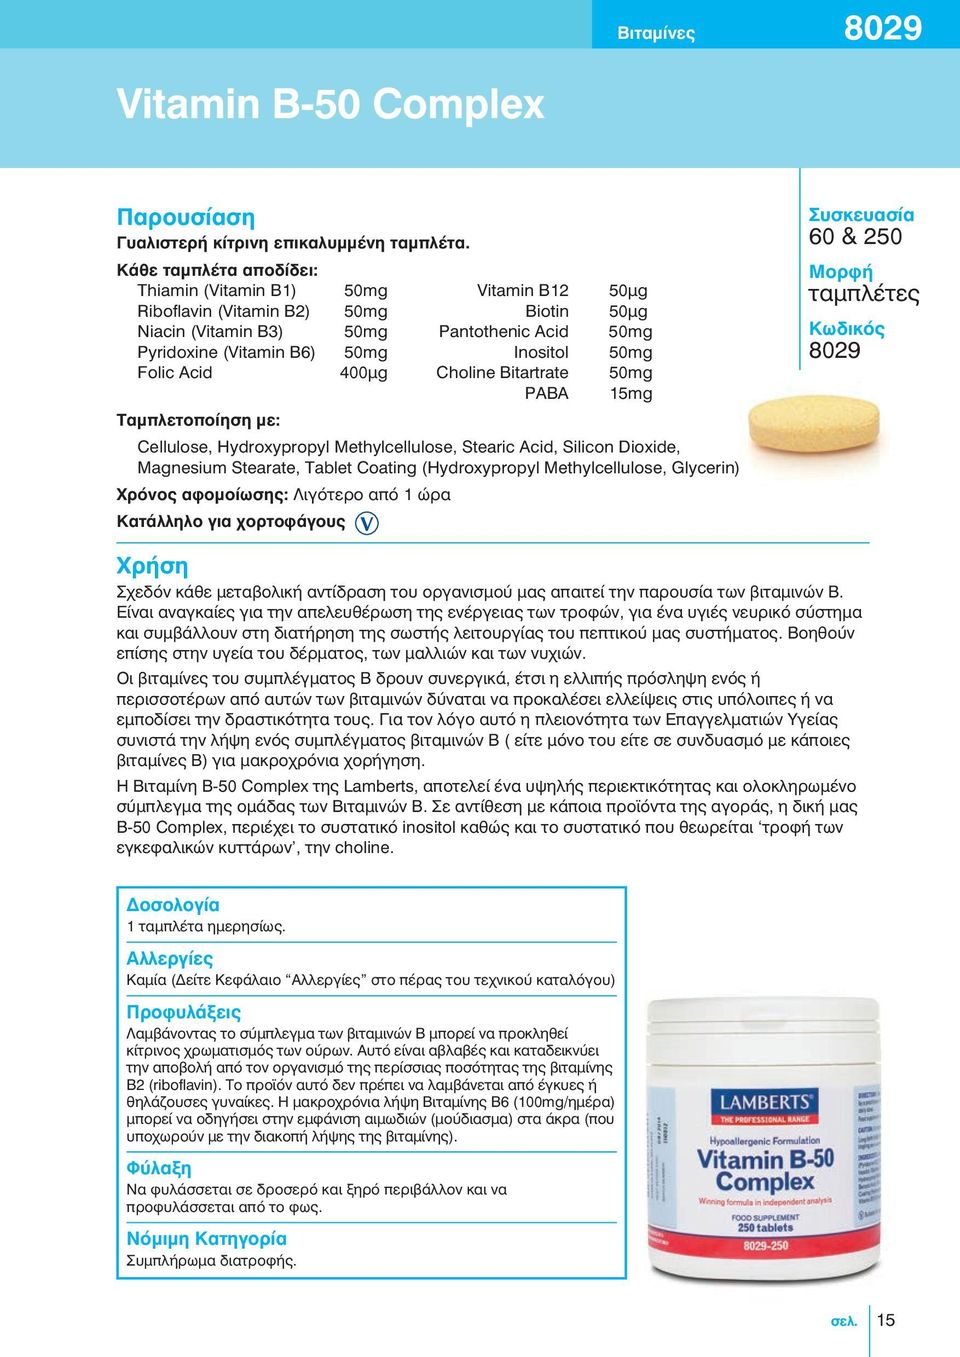 Folic Acid 400μg Choline Bitartrate 50mg PABA 15mg Ταμπλετοποίηση με: Cellulose, Hydroxypropyl Methylcellulose, Stearic Acid, Silicon Dioxide, Magnesium Stearate, Tablet Coating (Hydroxypropyl